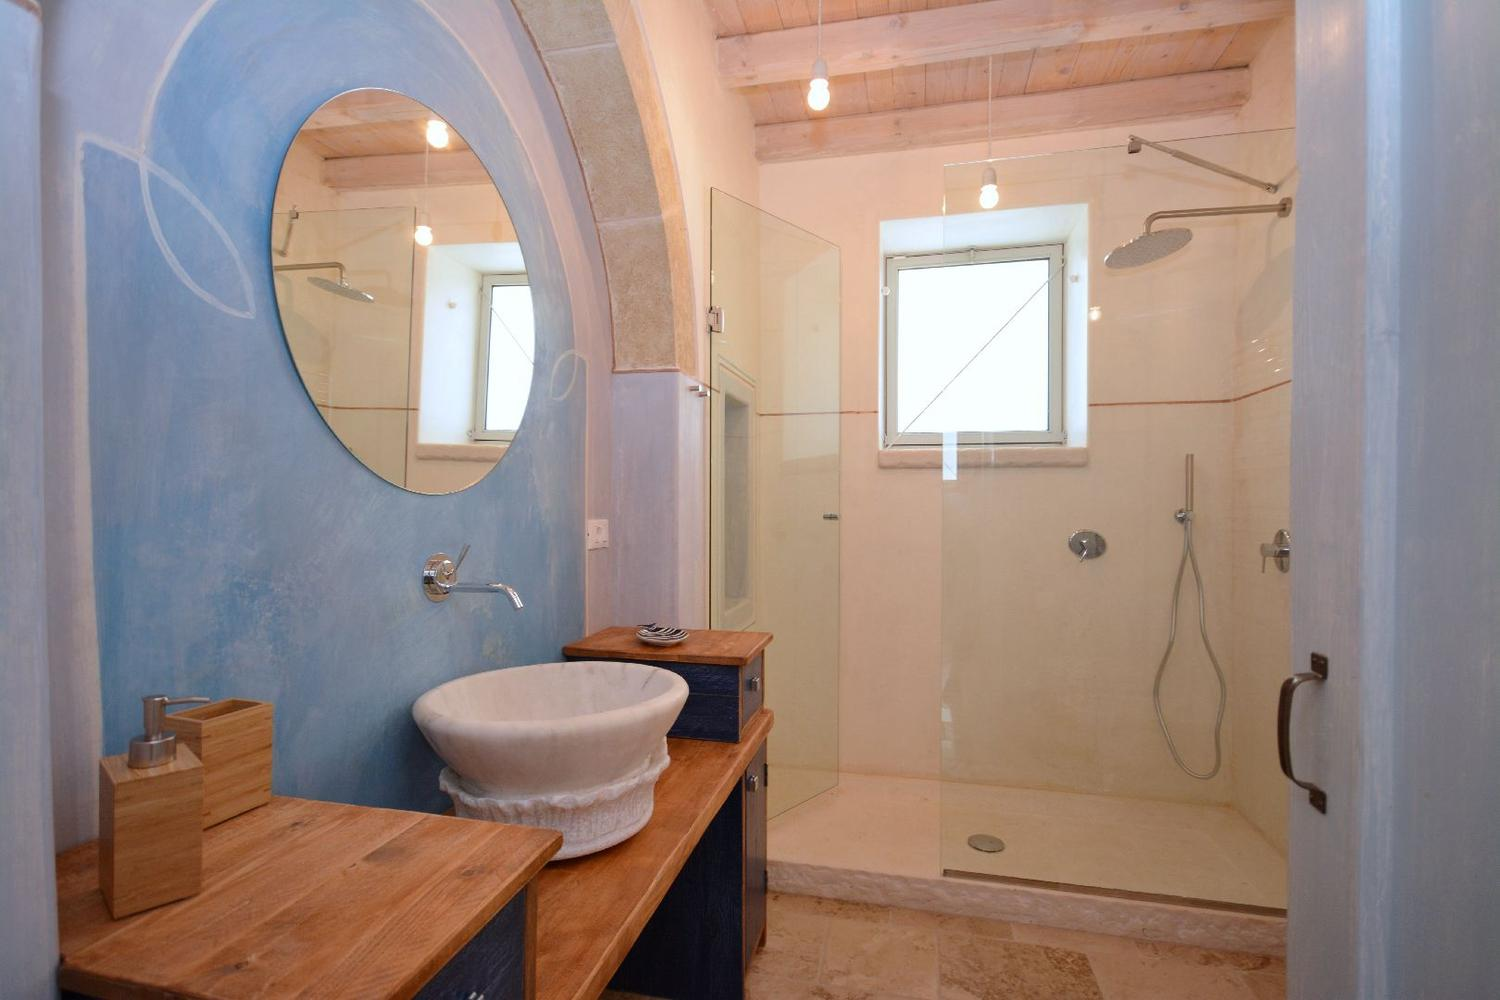 Double bedroom C - Bathroom